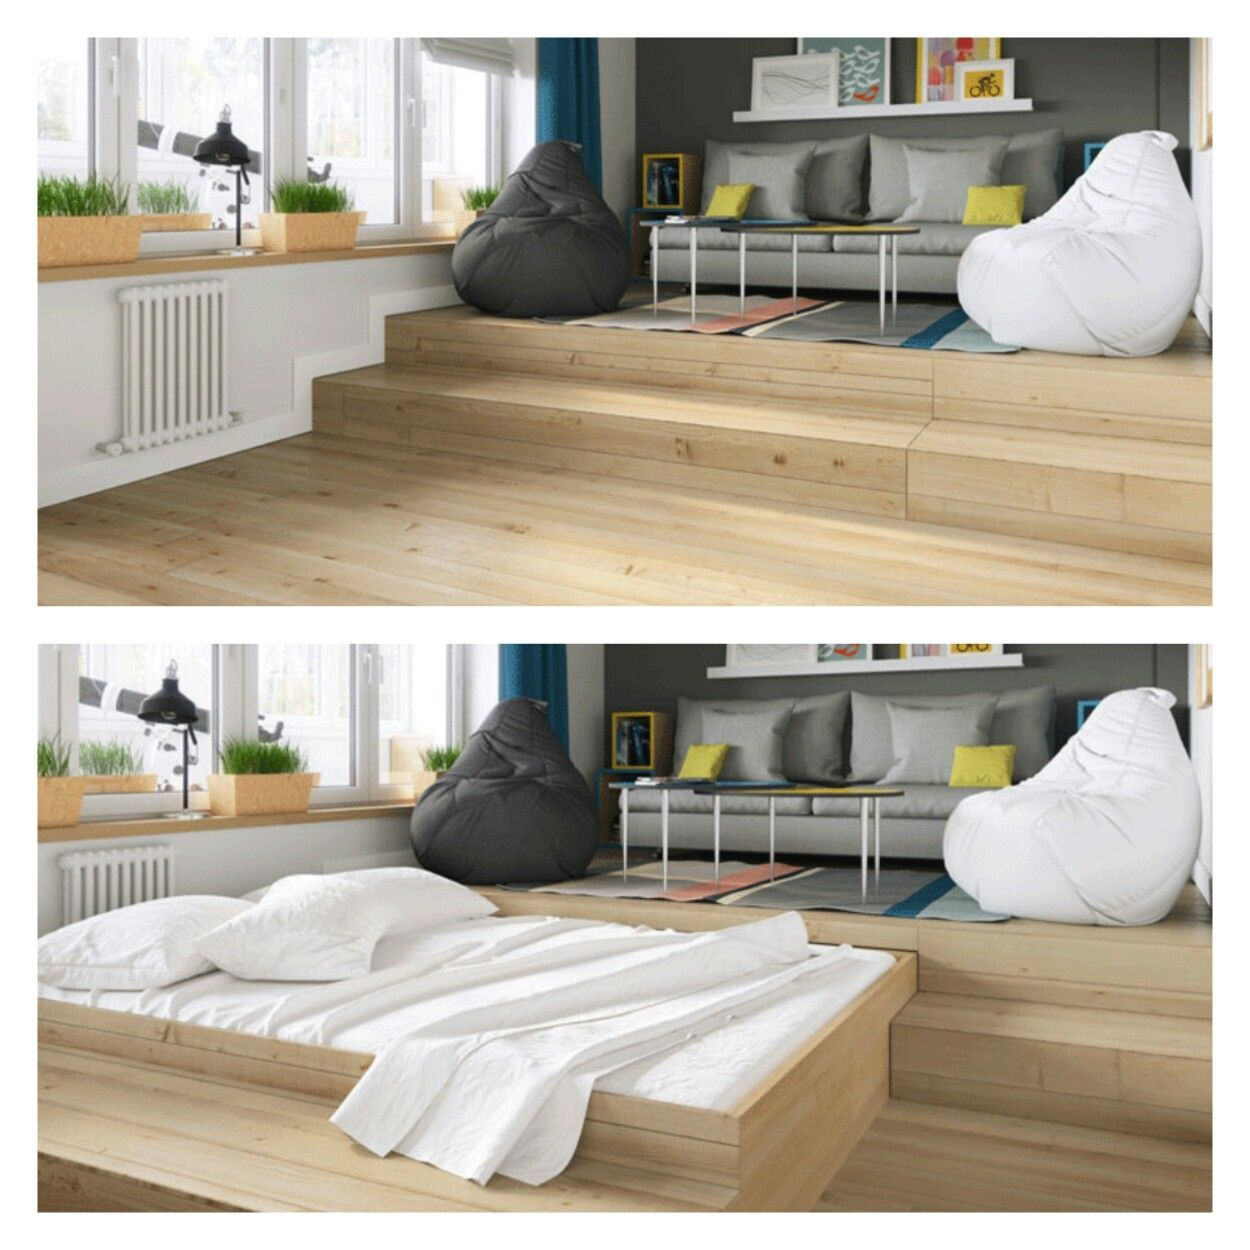 Pull out bed from added raised platform on floor Murphy